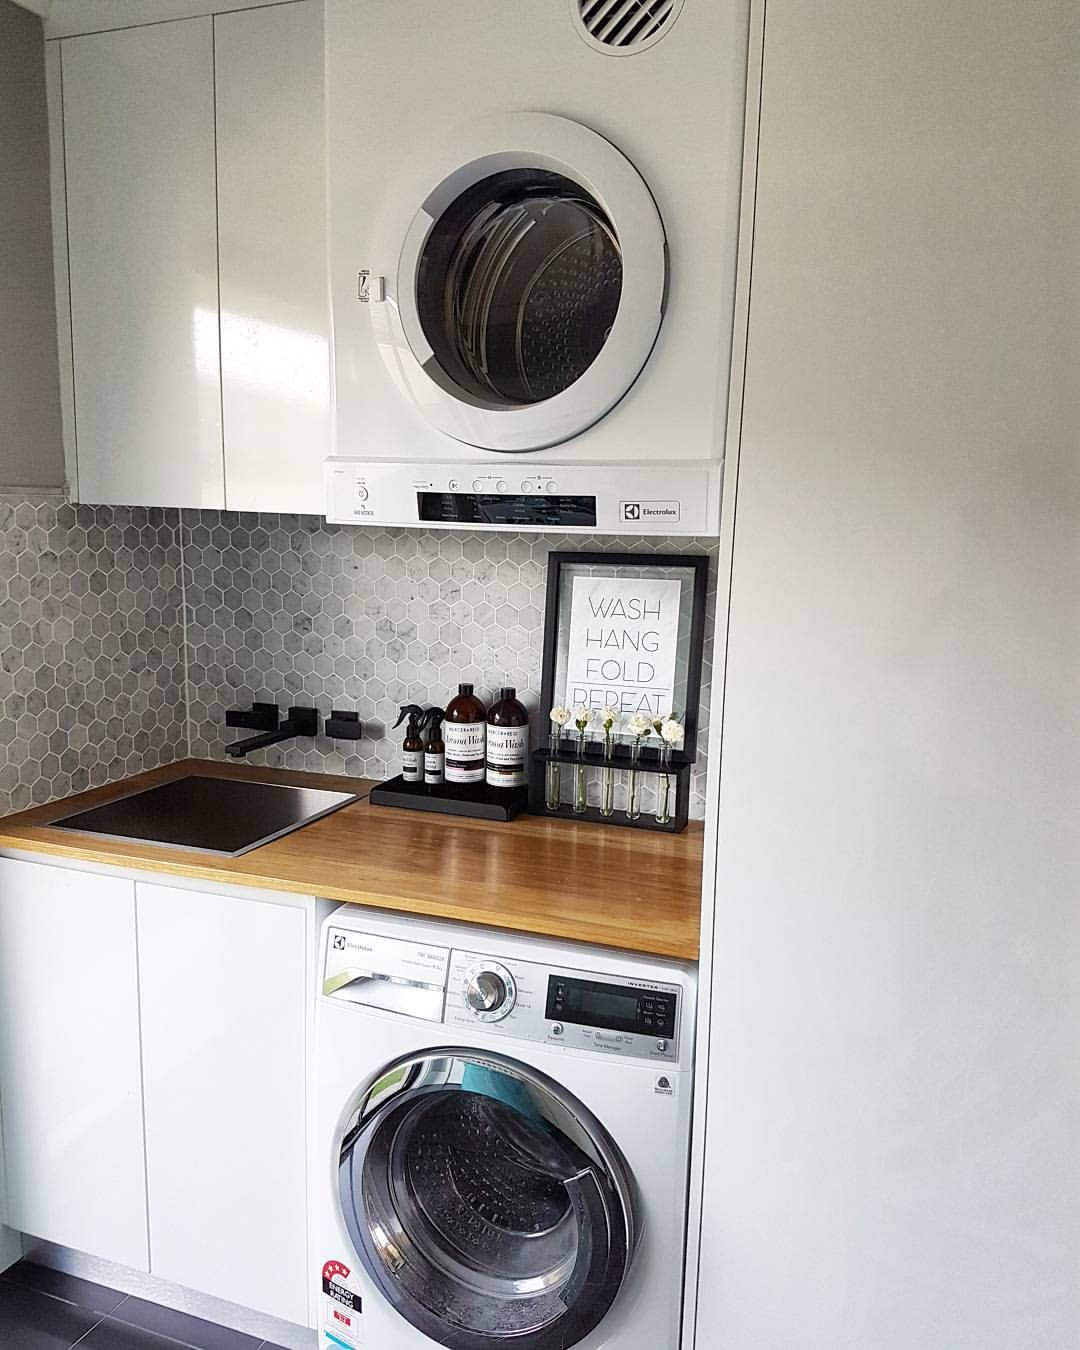 Pocket Of Our Home On Instagram Laundry Day Pocketofmyhome Style Home Small Laundry Room Organization Laundry Room Design Small Laundry